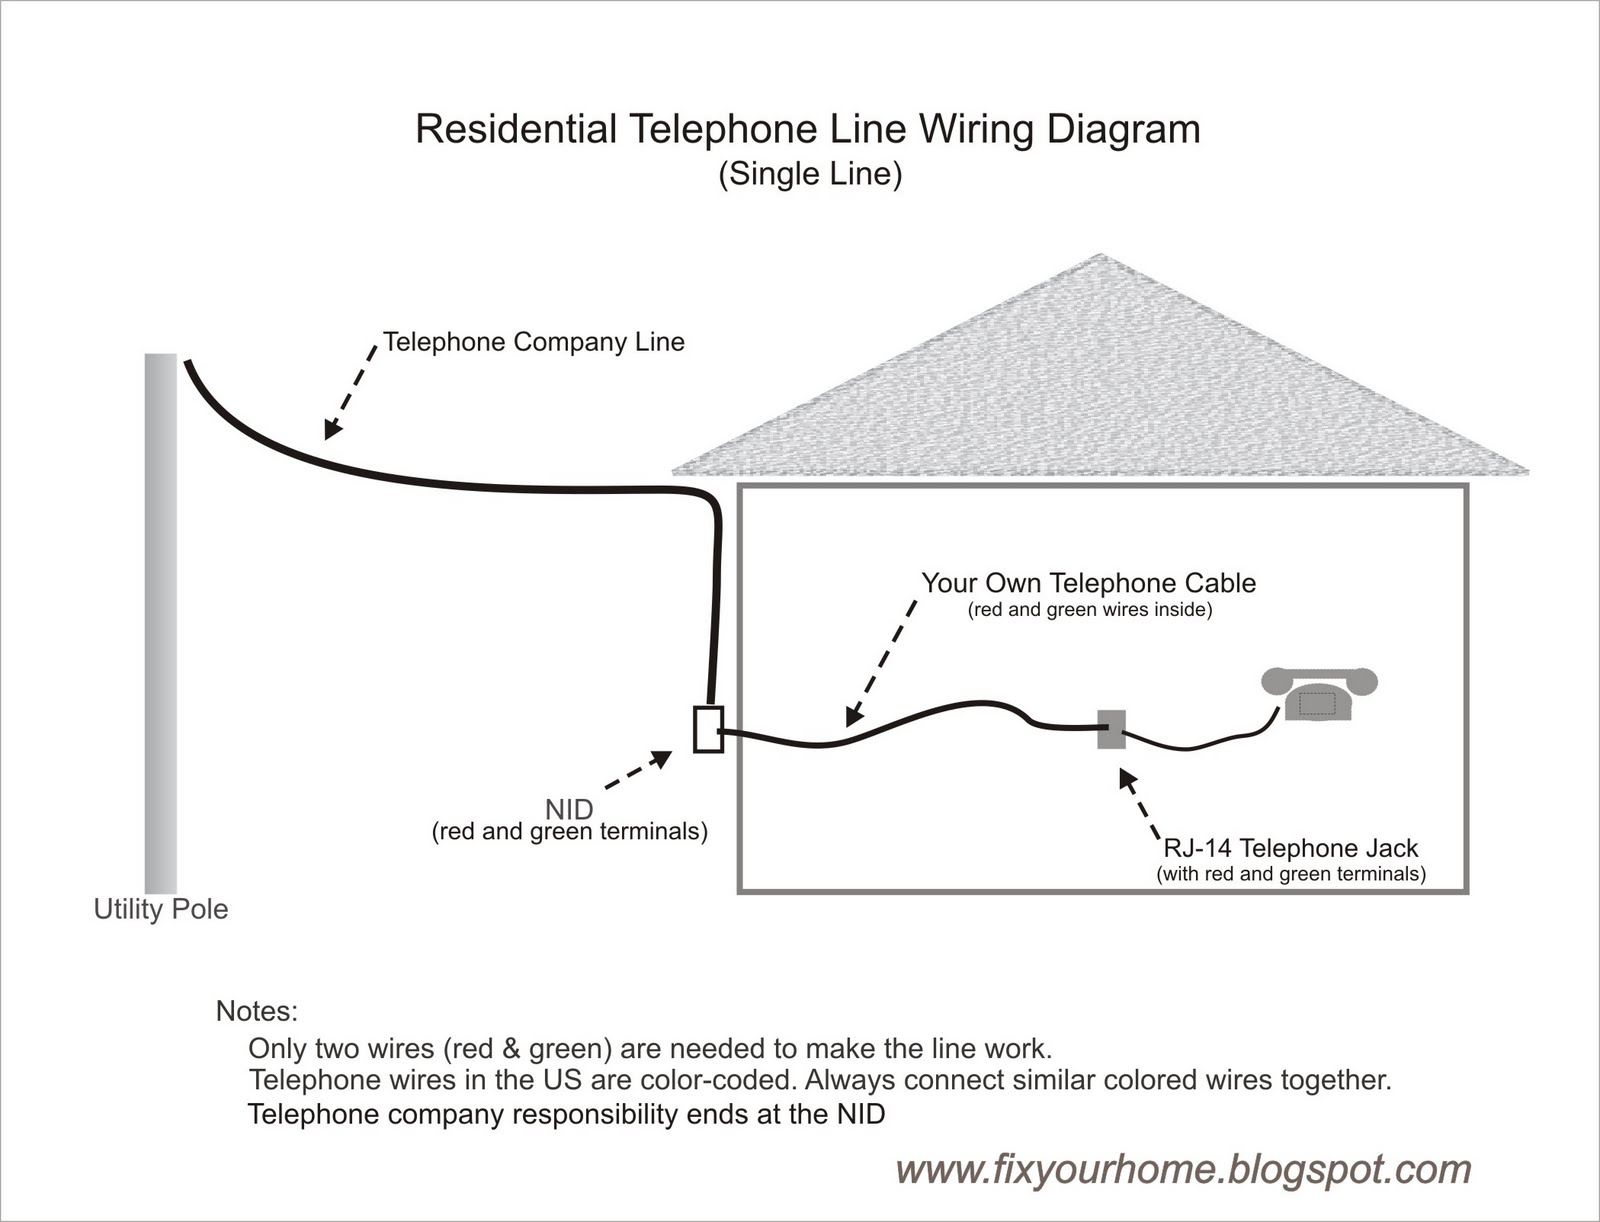 house telephone wiring diagram house telephone wiring fix your home: how to wire your own telephone line #1